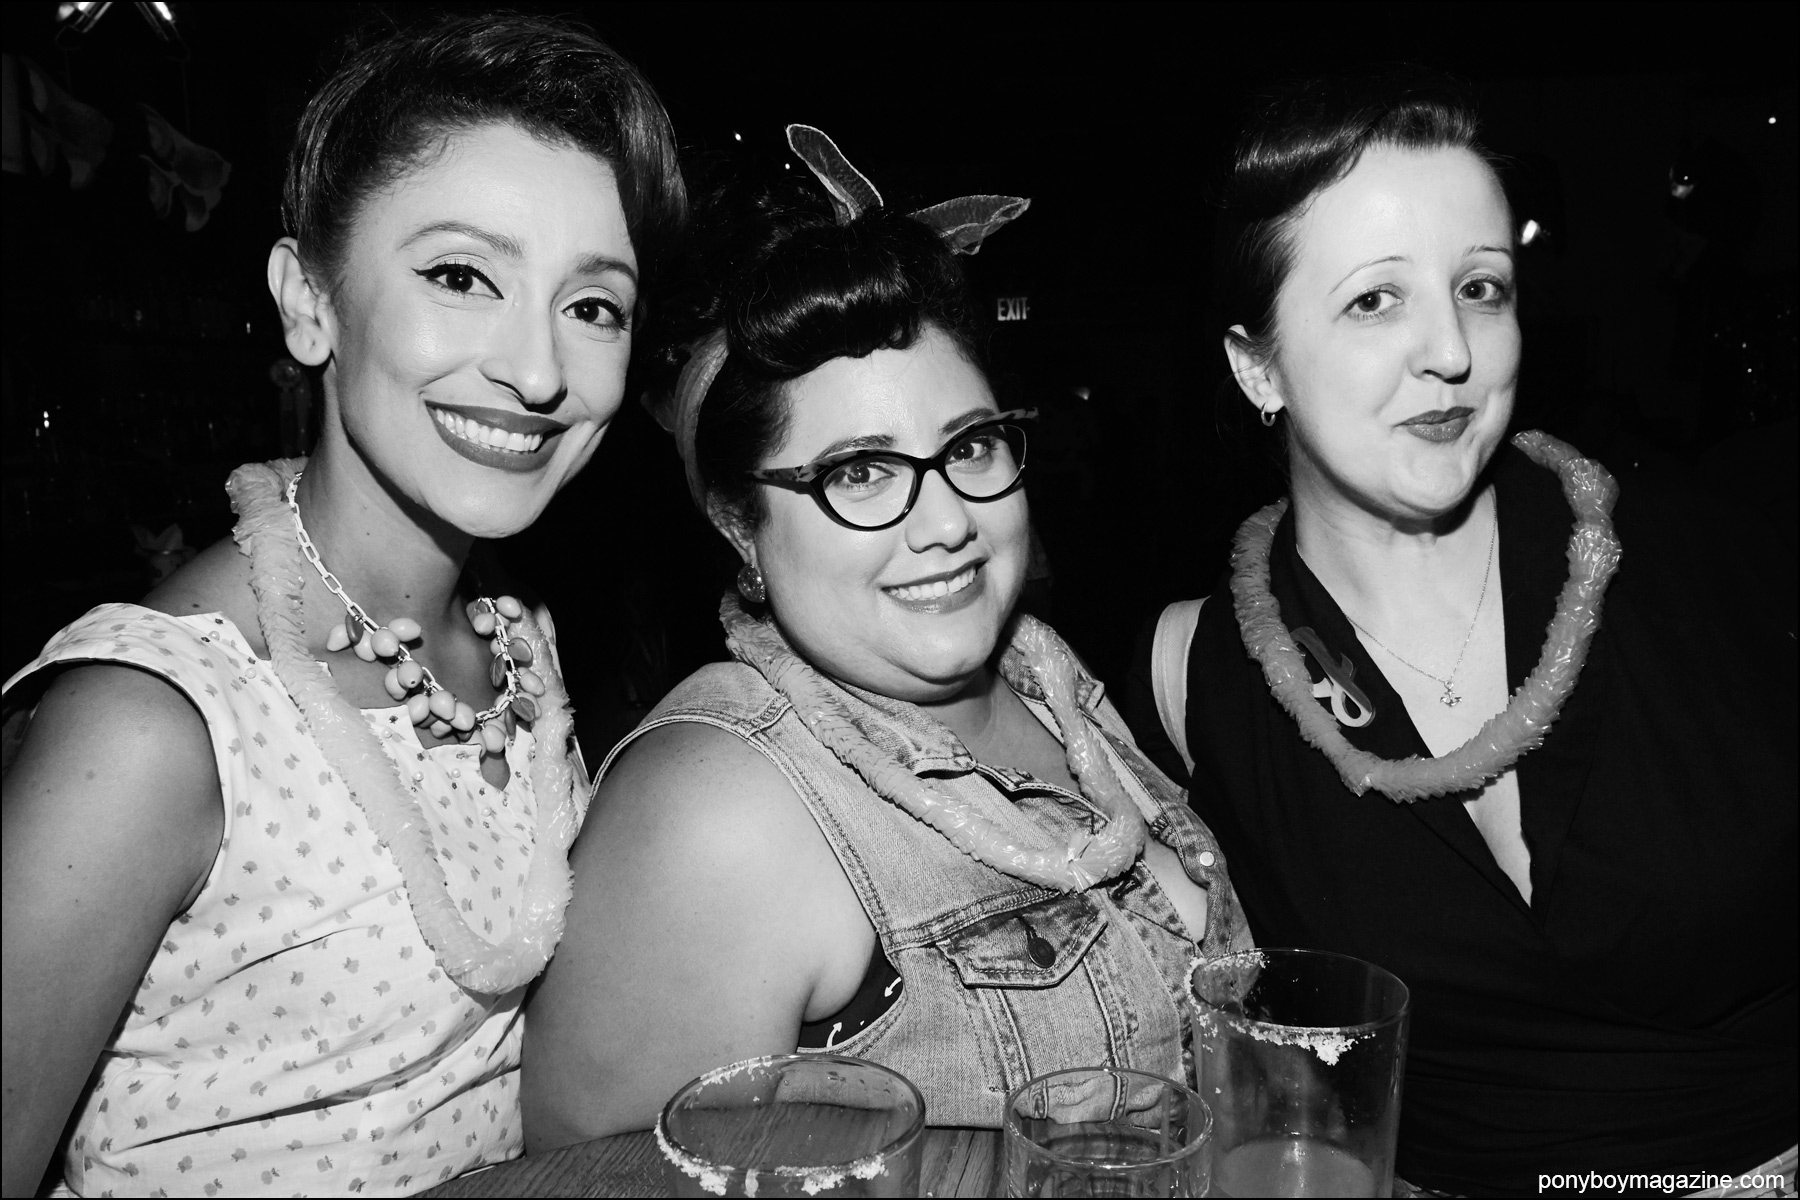 Trio of rockabilly ladies in vintage fashions, photographed at Hula Rock Vol 2 weekender in New York City. Photographed by Alexander Thompson for Ponyboy magazine NY.